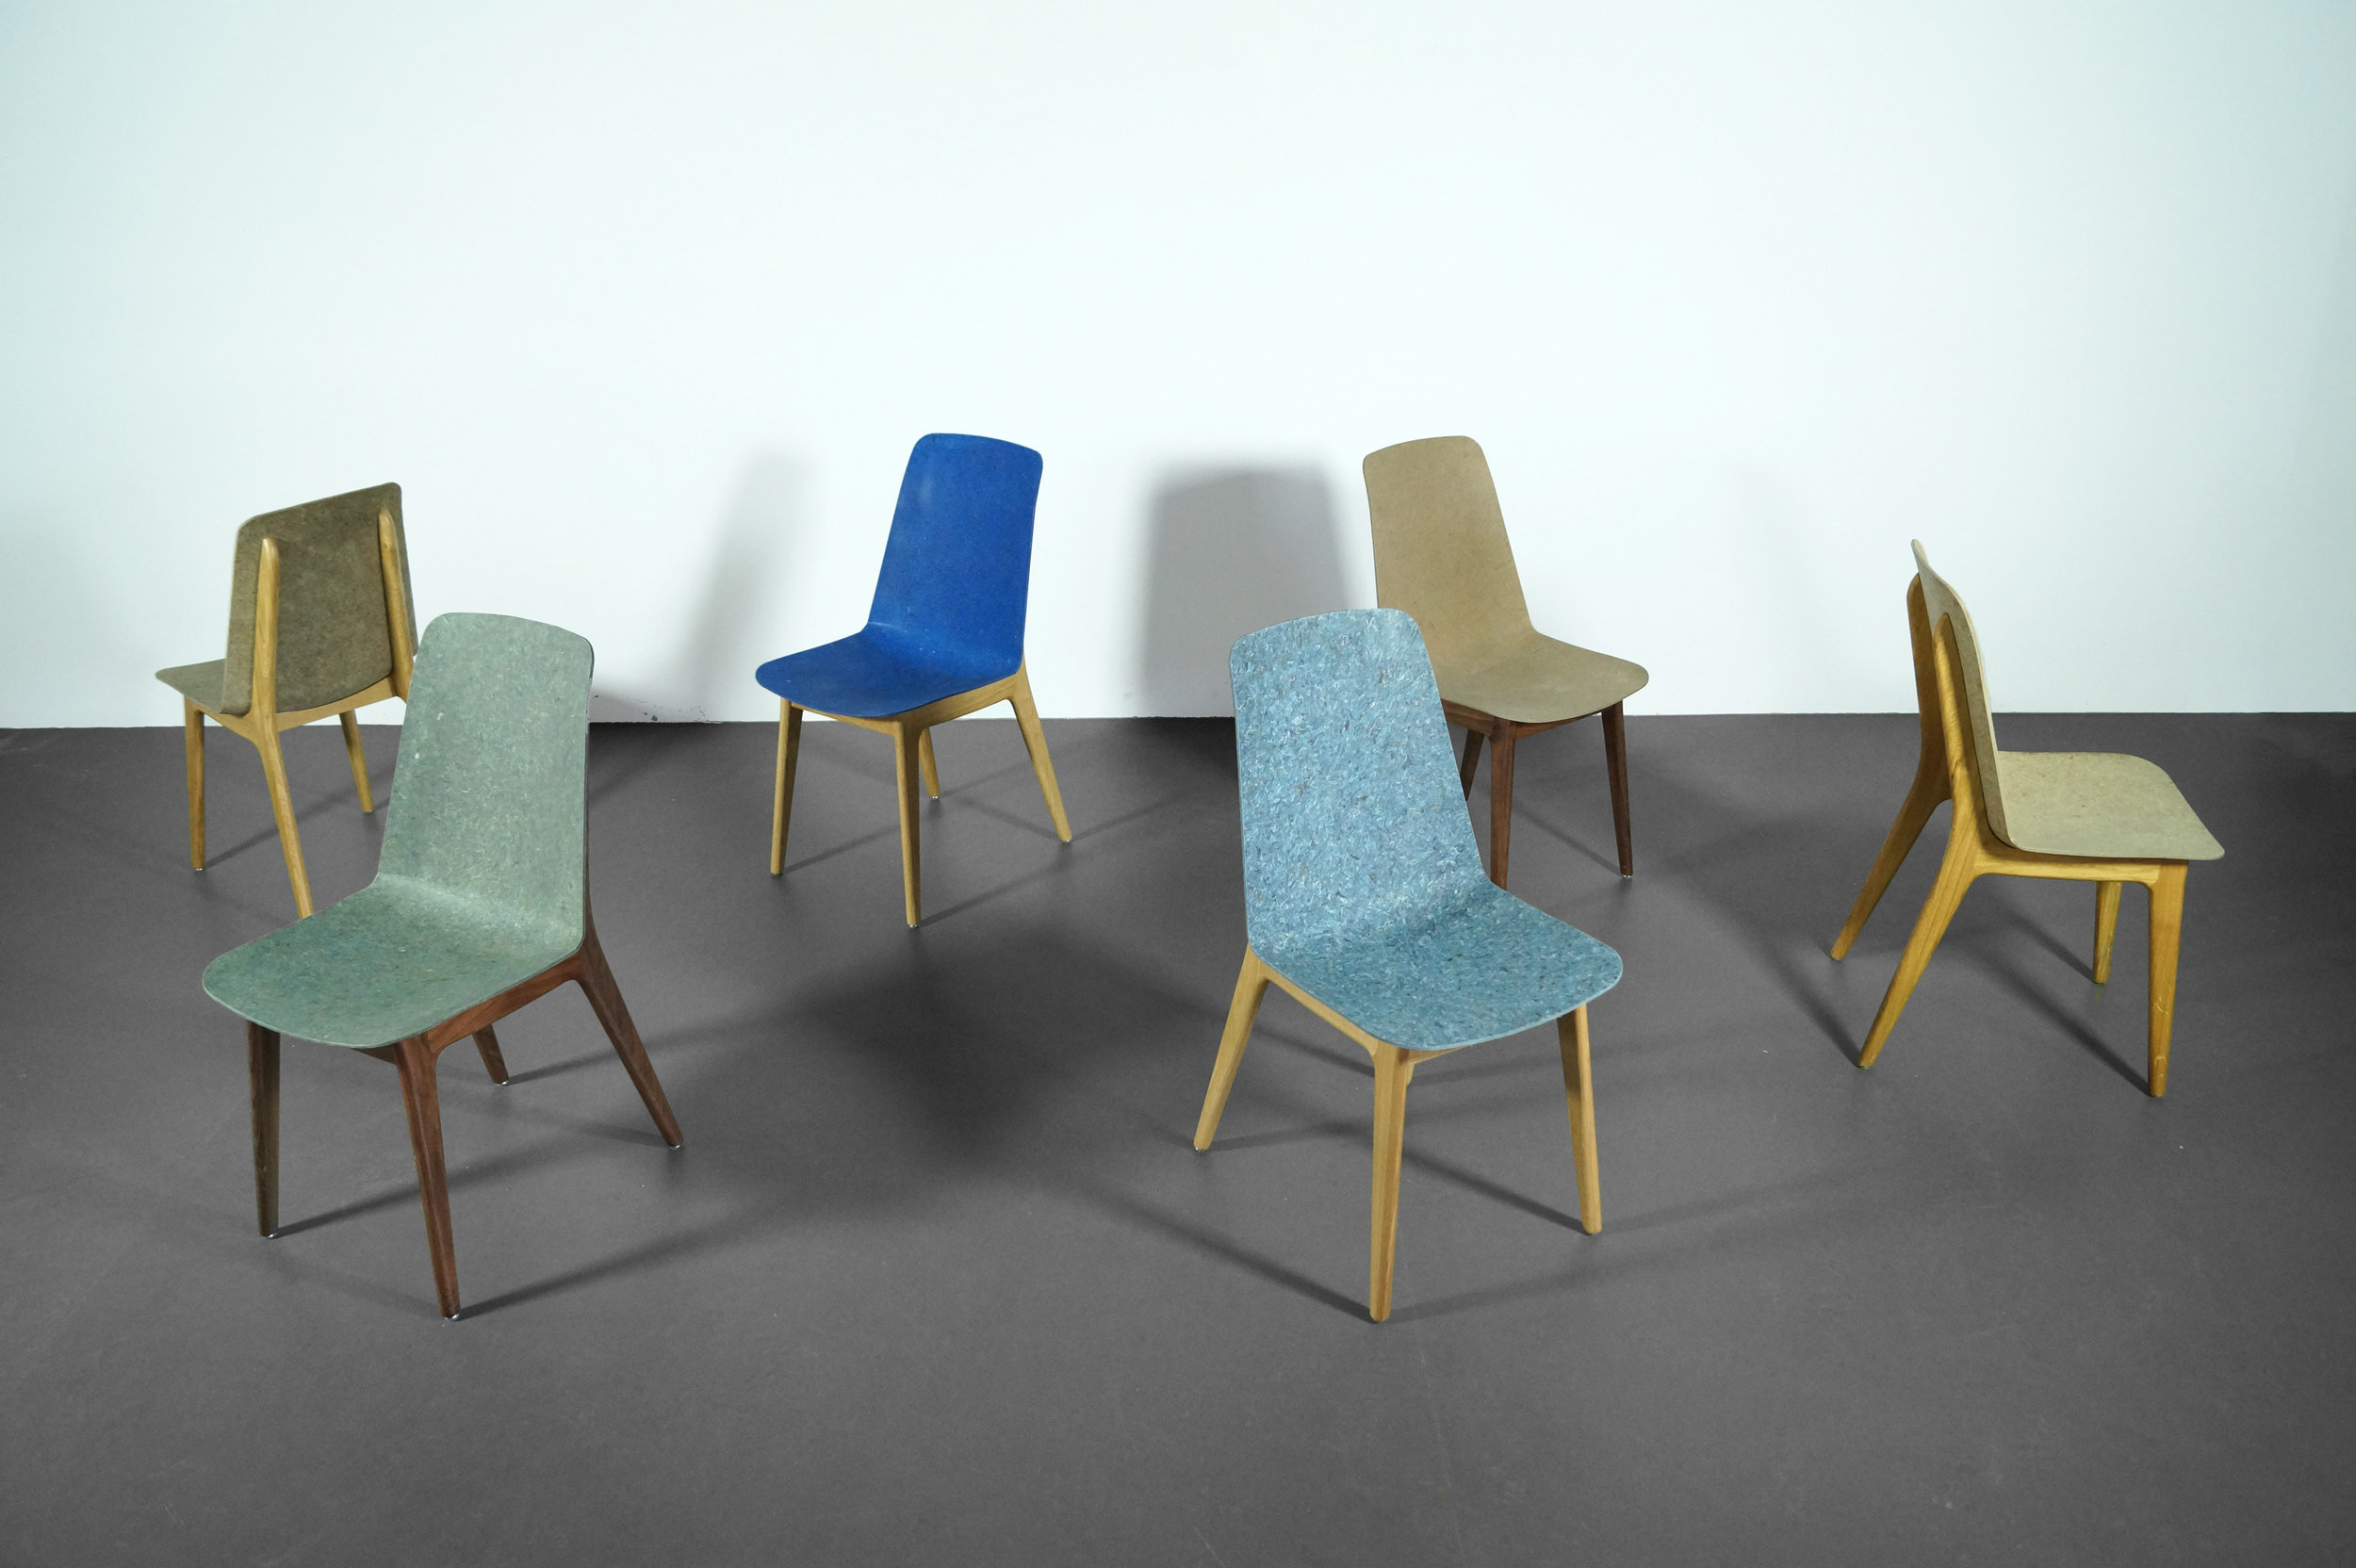 00_Unusual chairs composition random.JPG PLANQ, Rezign, circulair, denim, army, suits, abn amro, tommy hilfiger, Revv, lockers, kasten, circulair, duurzaamheid, meubelen, meubilair, meubels, duurzaam, recyclen, Dennis, Anton, Joris, circulaire economie, gymzaaltafel, gymzaal, stoel, kruk, tafel, KLM, Starbucks, Teeuw, Kortenhorst, Amsterdam, QO, hergebruik, circulair design, circulaire meubelen, duurzaam meubilair, experience design, design studio, Planq, planq, design studio Planq, interieur, circulair interieur, duurzaam interieur, planq, planqproducts, circular, embassyofcircularity, jeans, recycled, sustainabledesign, circulareconomy, chairdesign, ubuchair, unusualchair ,design, Furniture, furnituredesign, Rezign, chairdesign, tabledesign, interiordesign, interior, dutchdesign, innovation, NHD, noord hollands dagbald